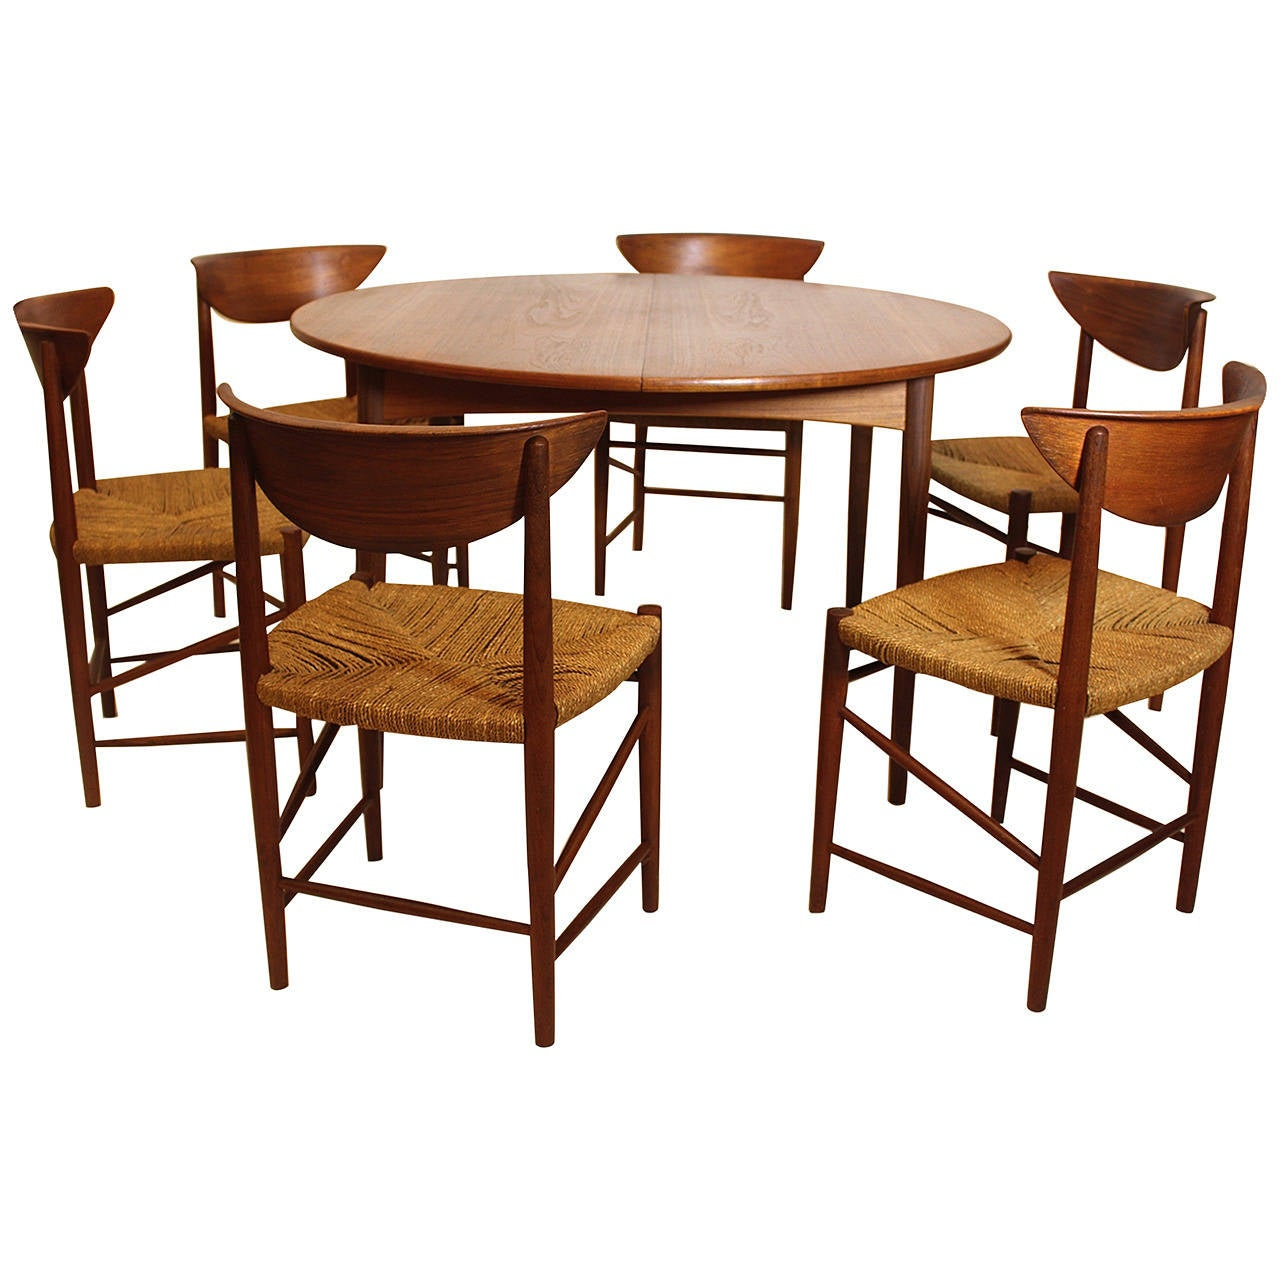 danish modern dining room suite by peter hvidt denmark